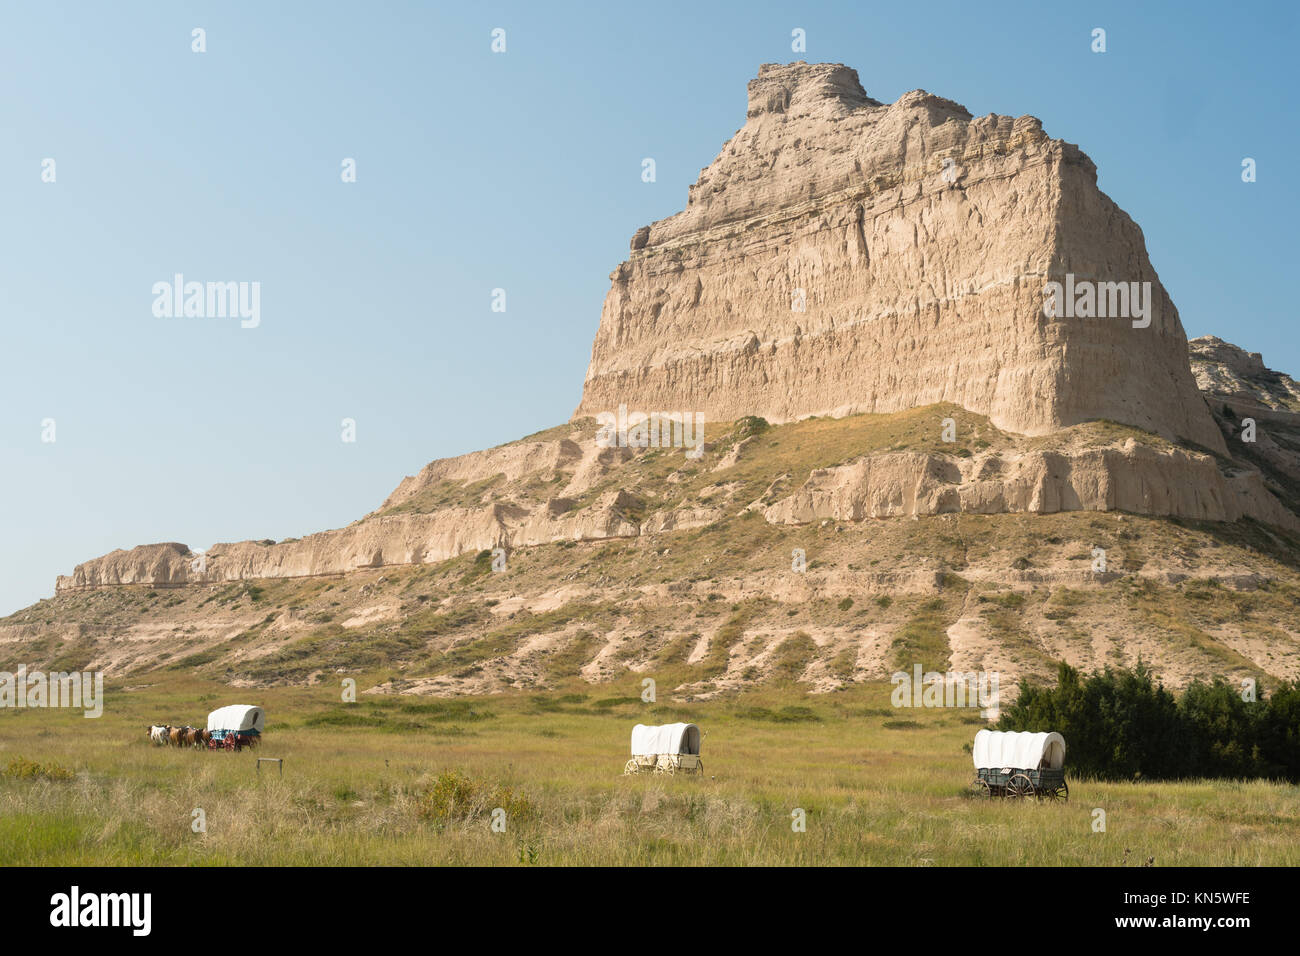 Wagons are situated at the base of Scott's Bluff in Nebraska - Stock Image